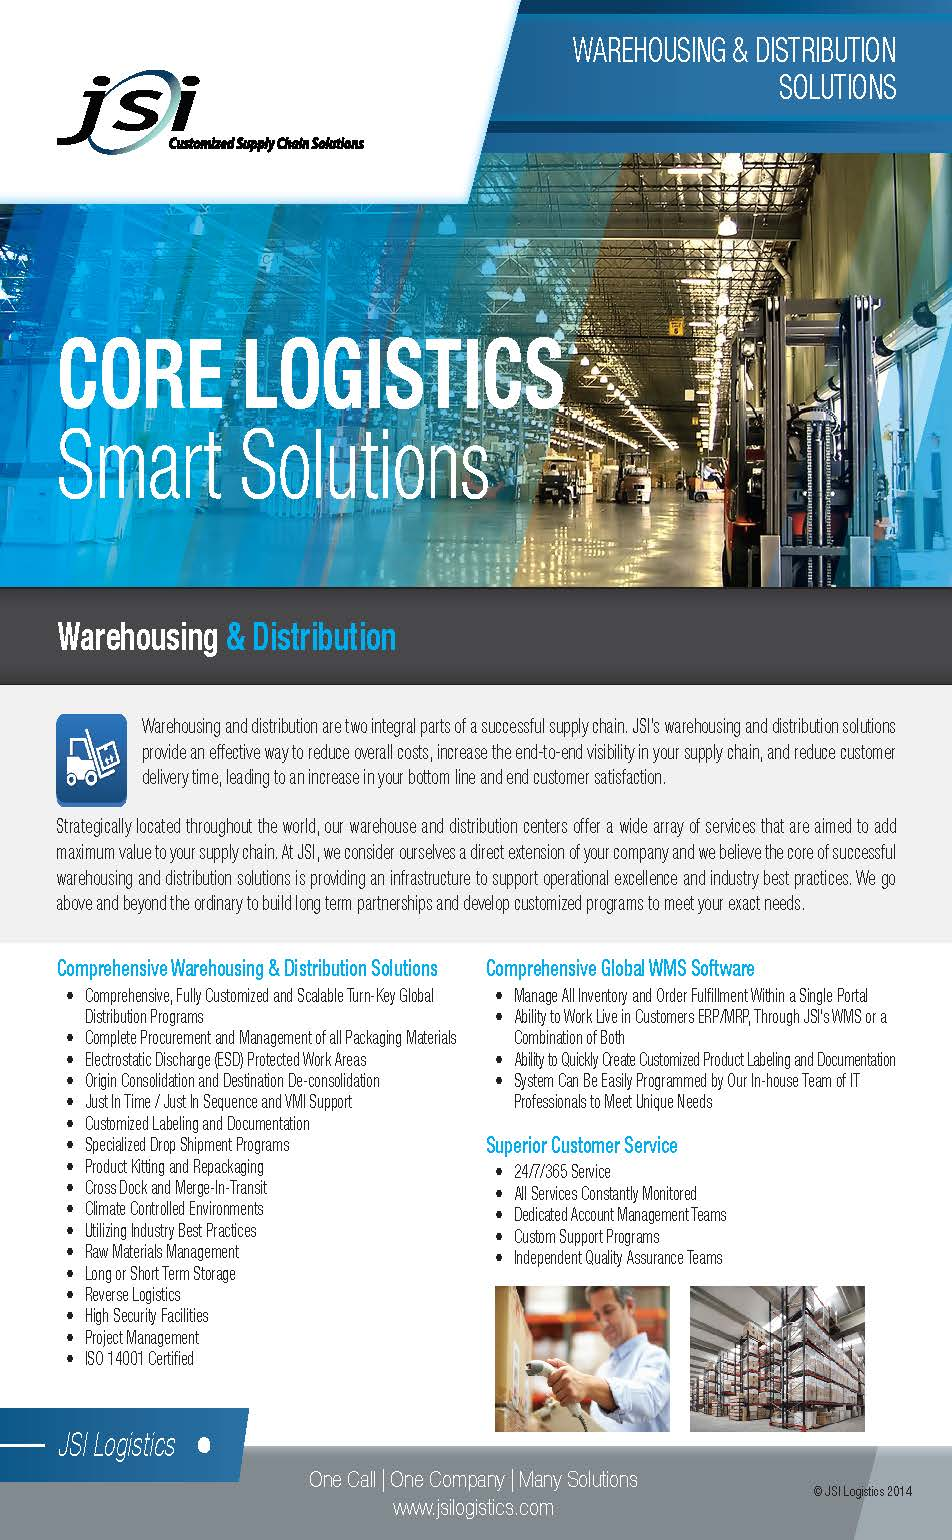 Warehousing & Distribution Solutions Flyer